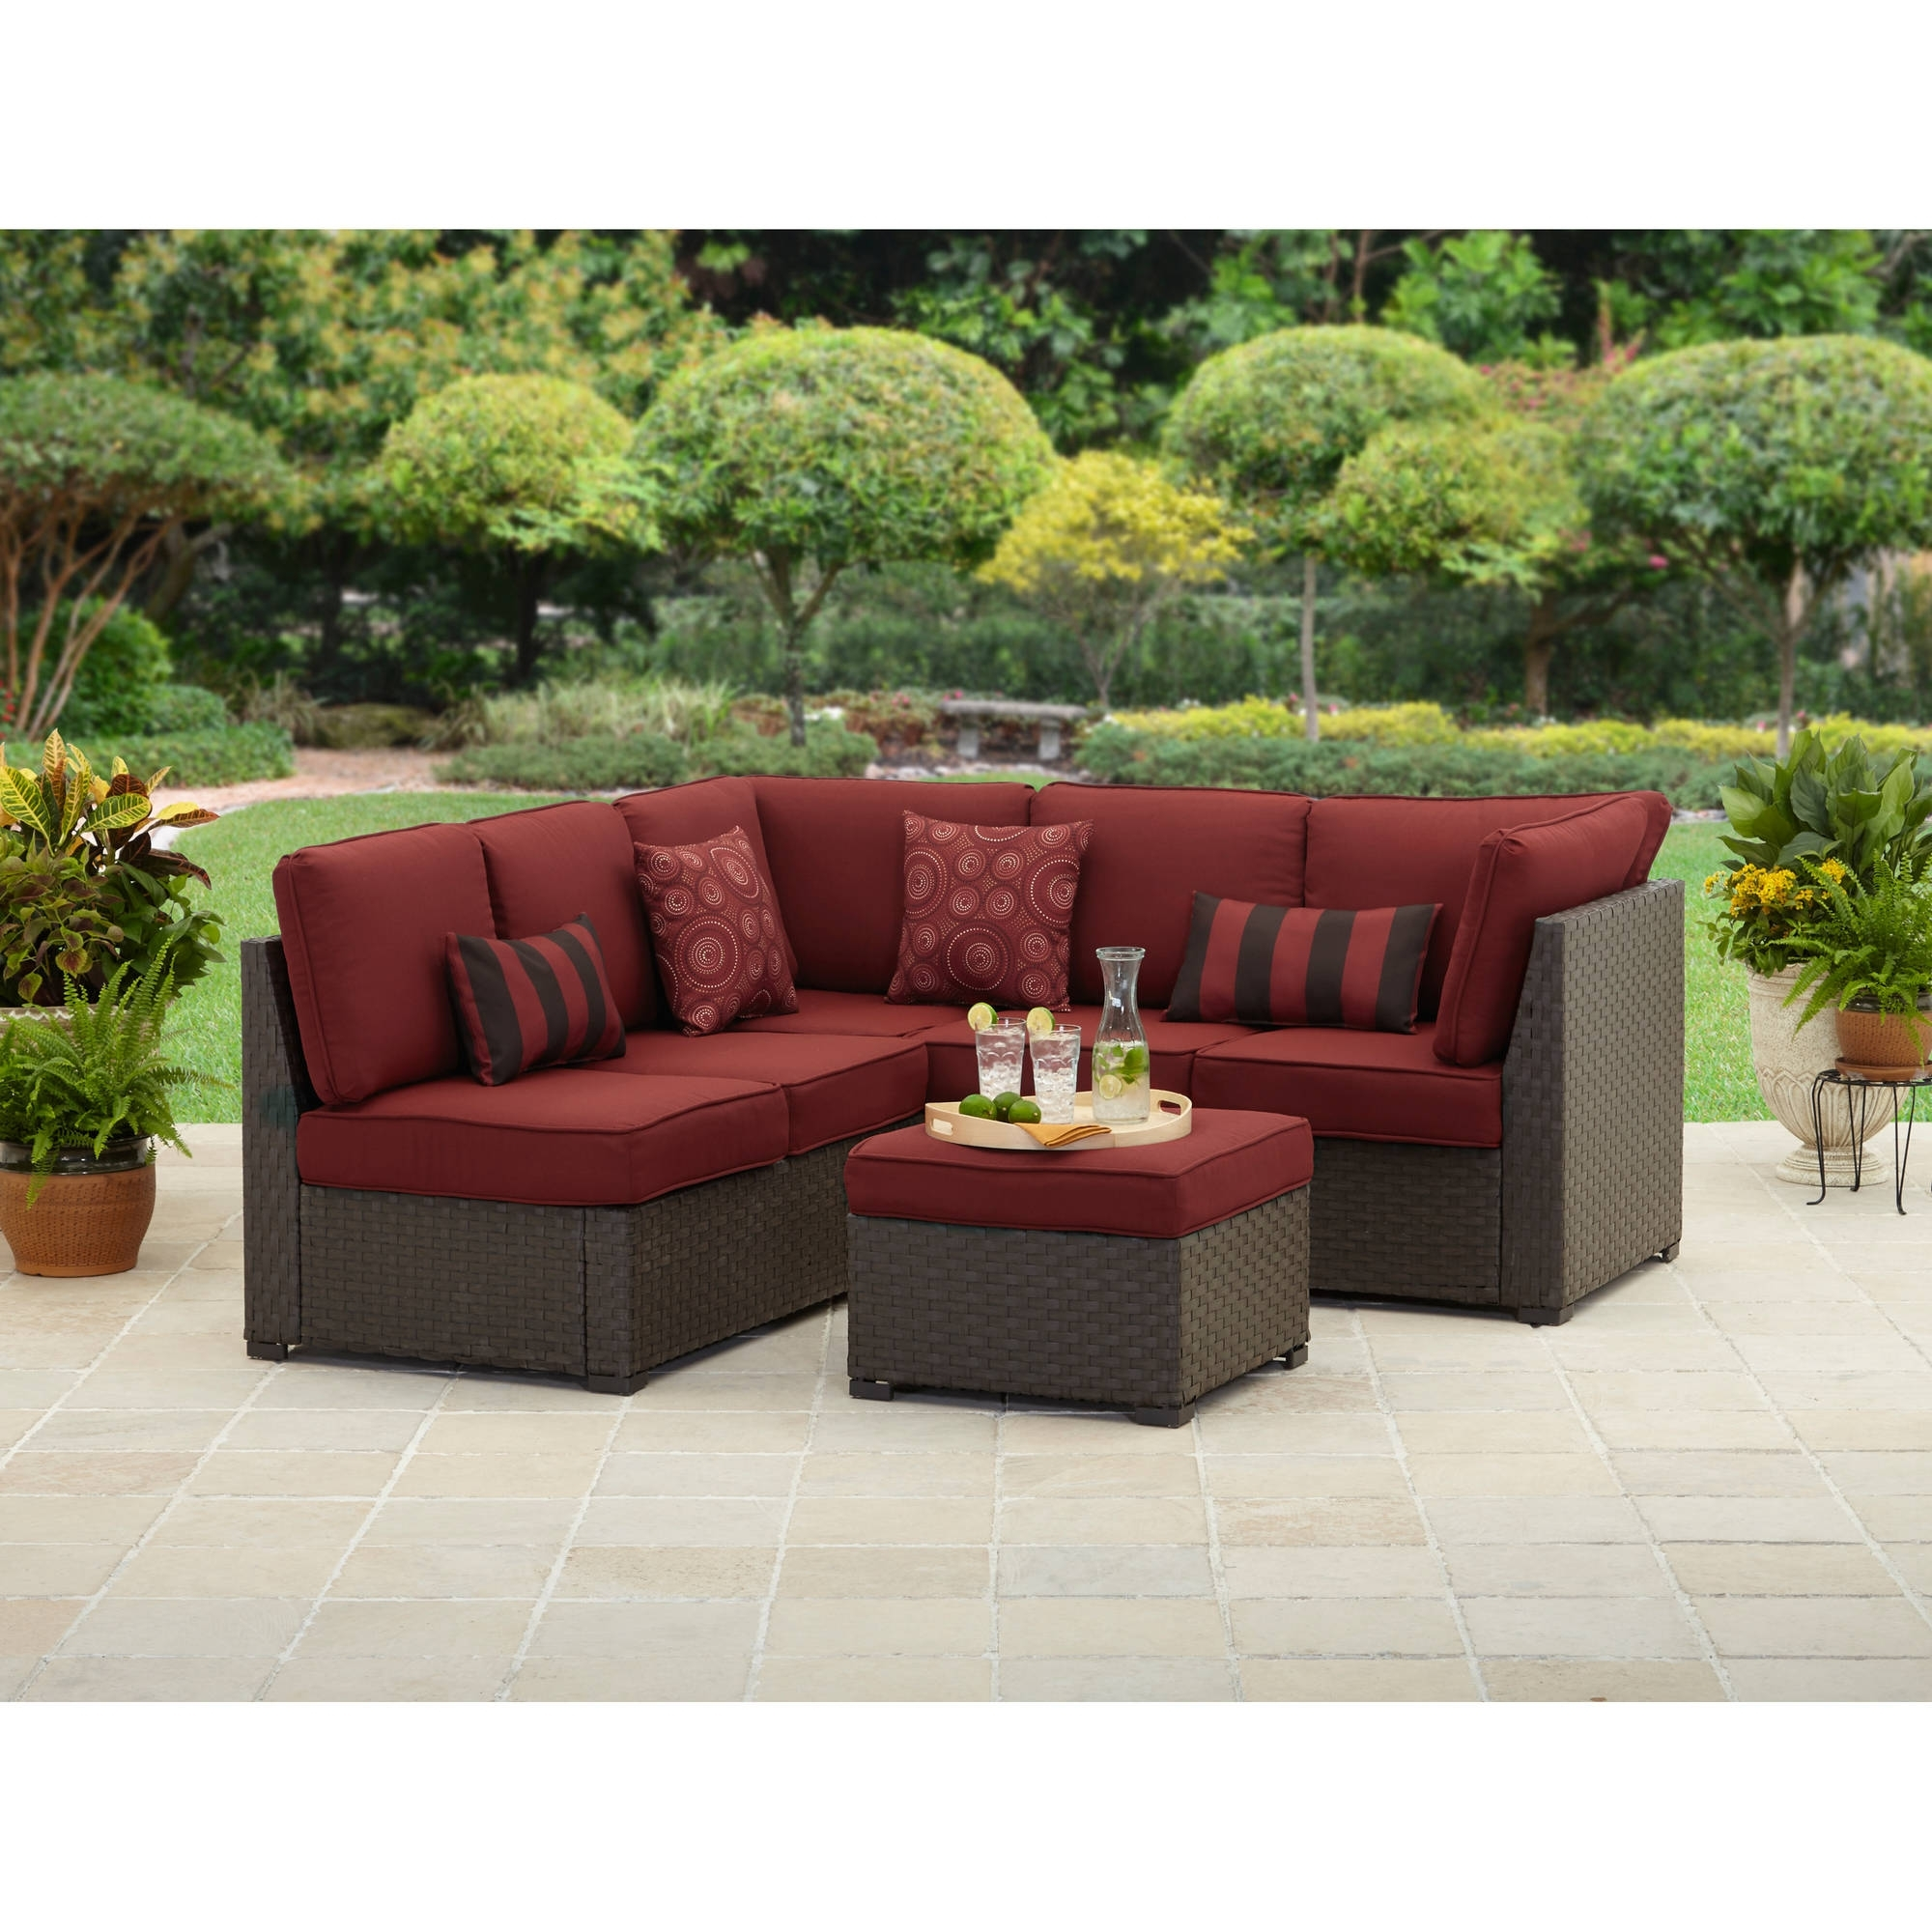 Better Homes And Gardens Rush Valley 3 Piece Outdoor Sectional Within Current Patio Sofas (View 13 of 15)